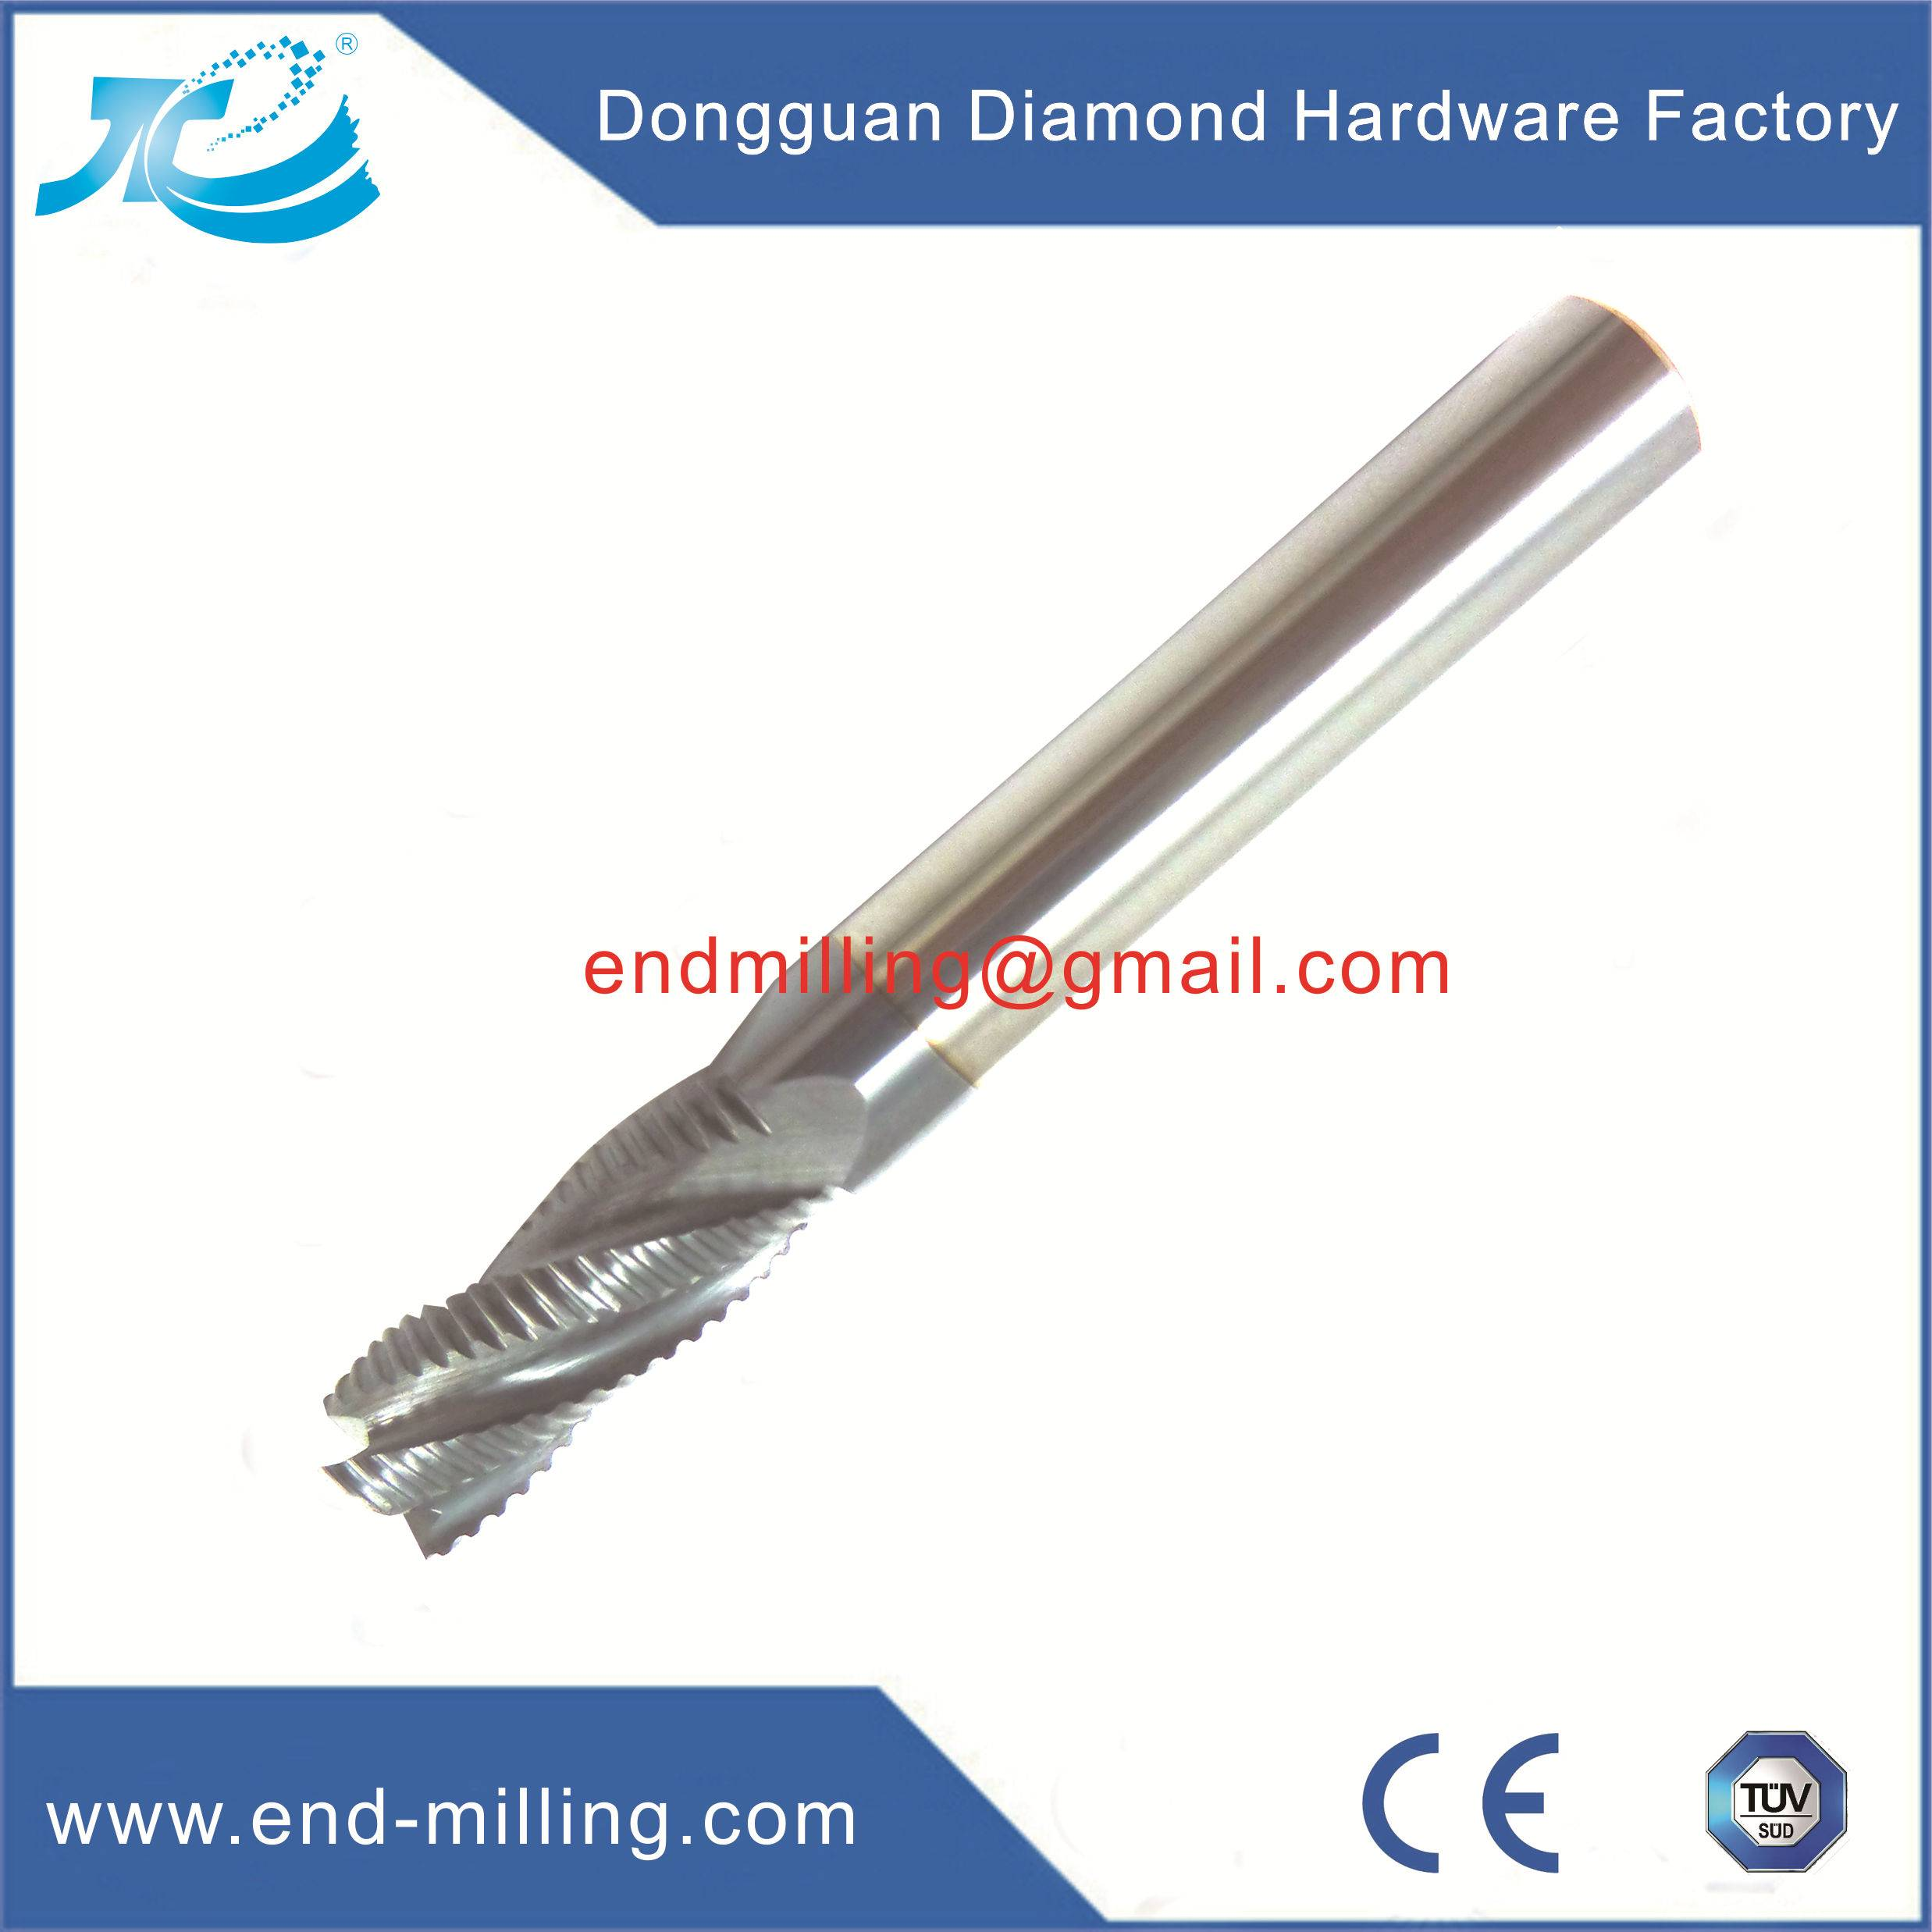 Tungsten Steel Roughing End Mill